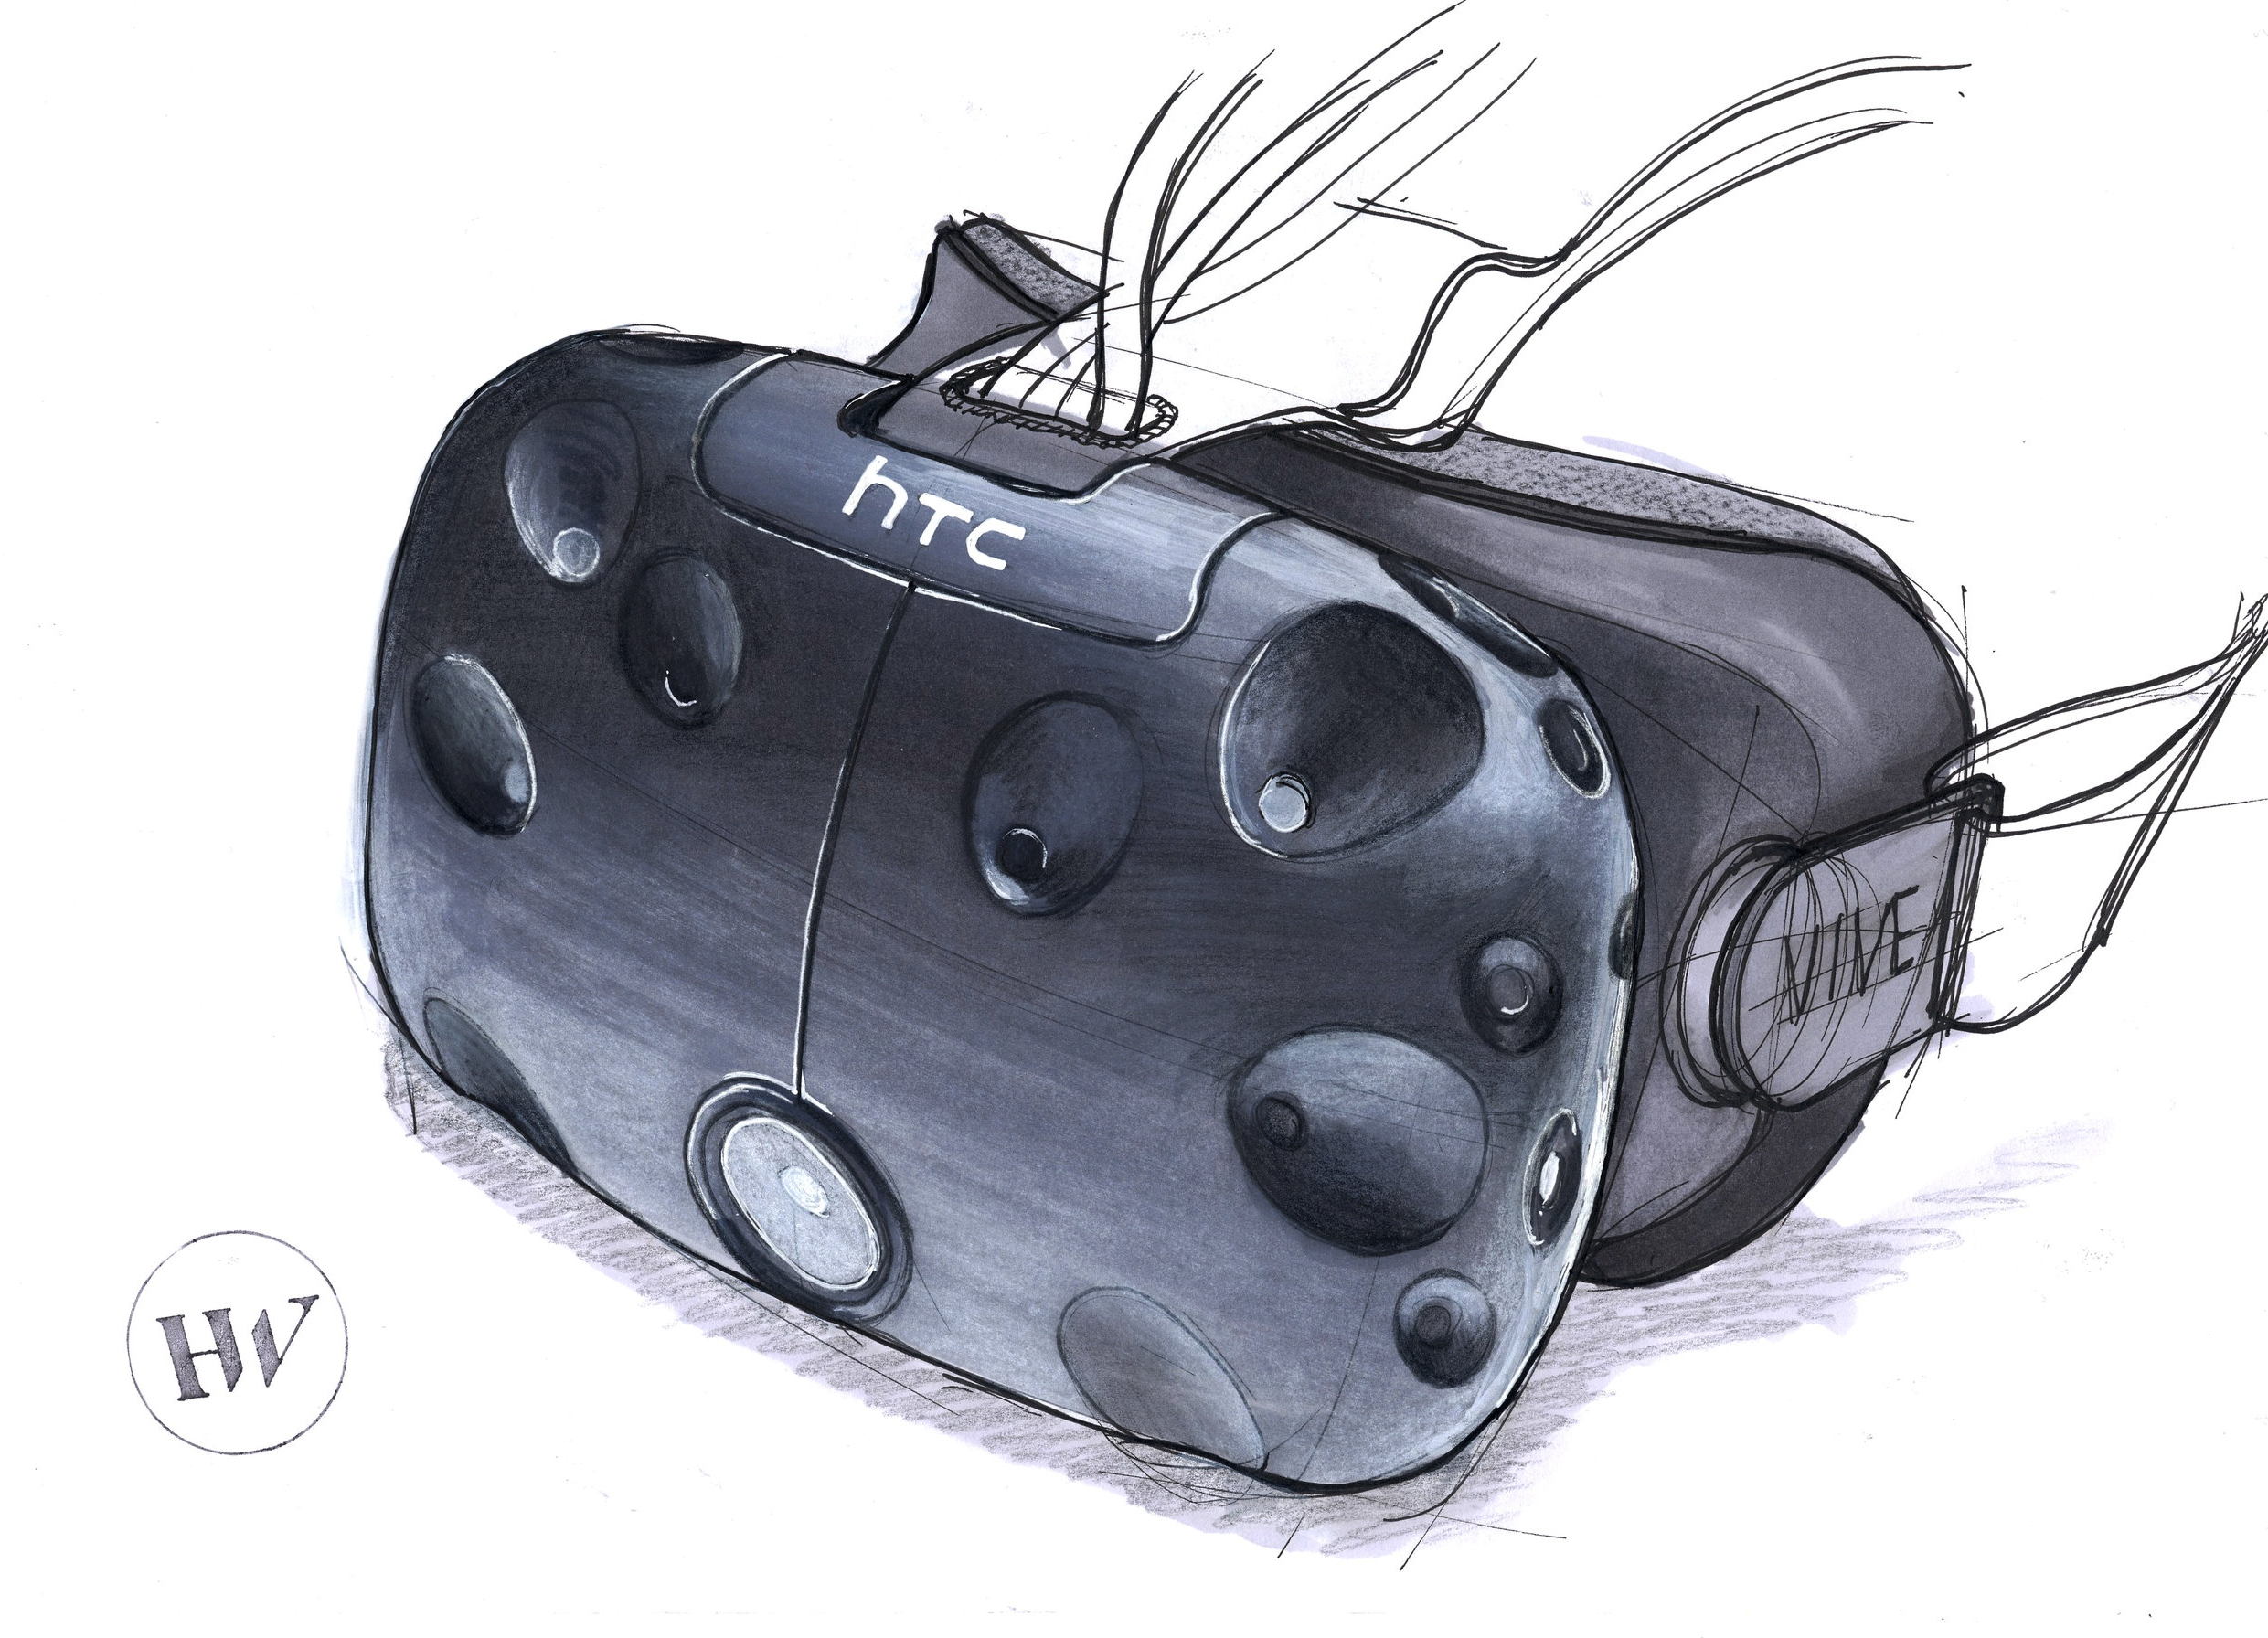 HTC's VIVE virtual reality headset.Marker, pen and pencil.